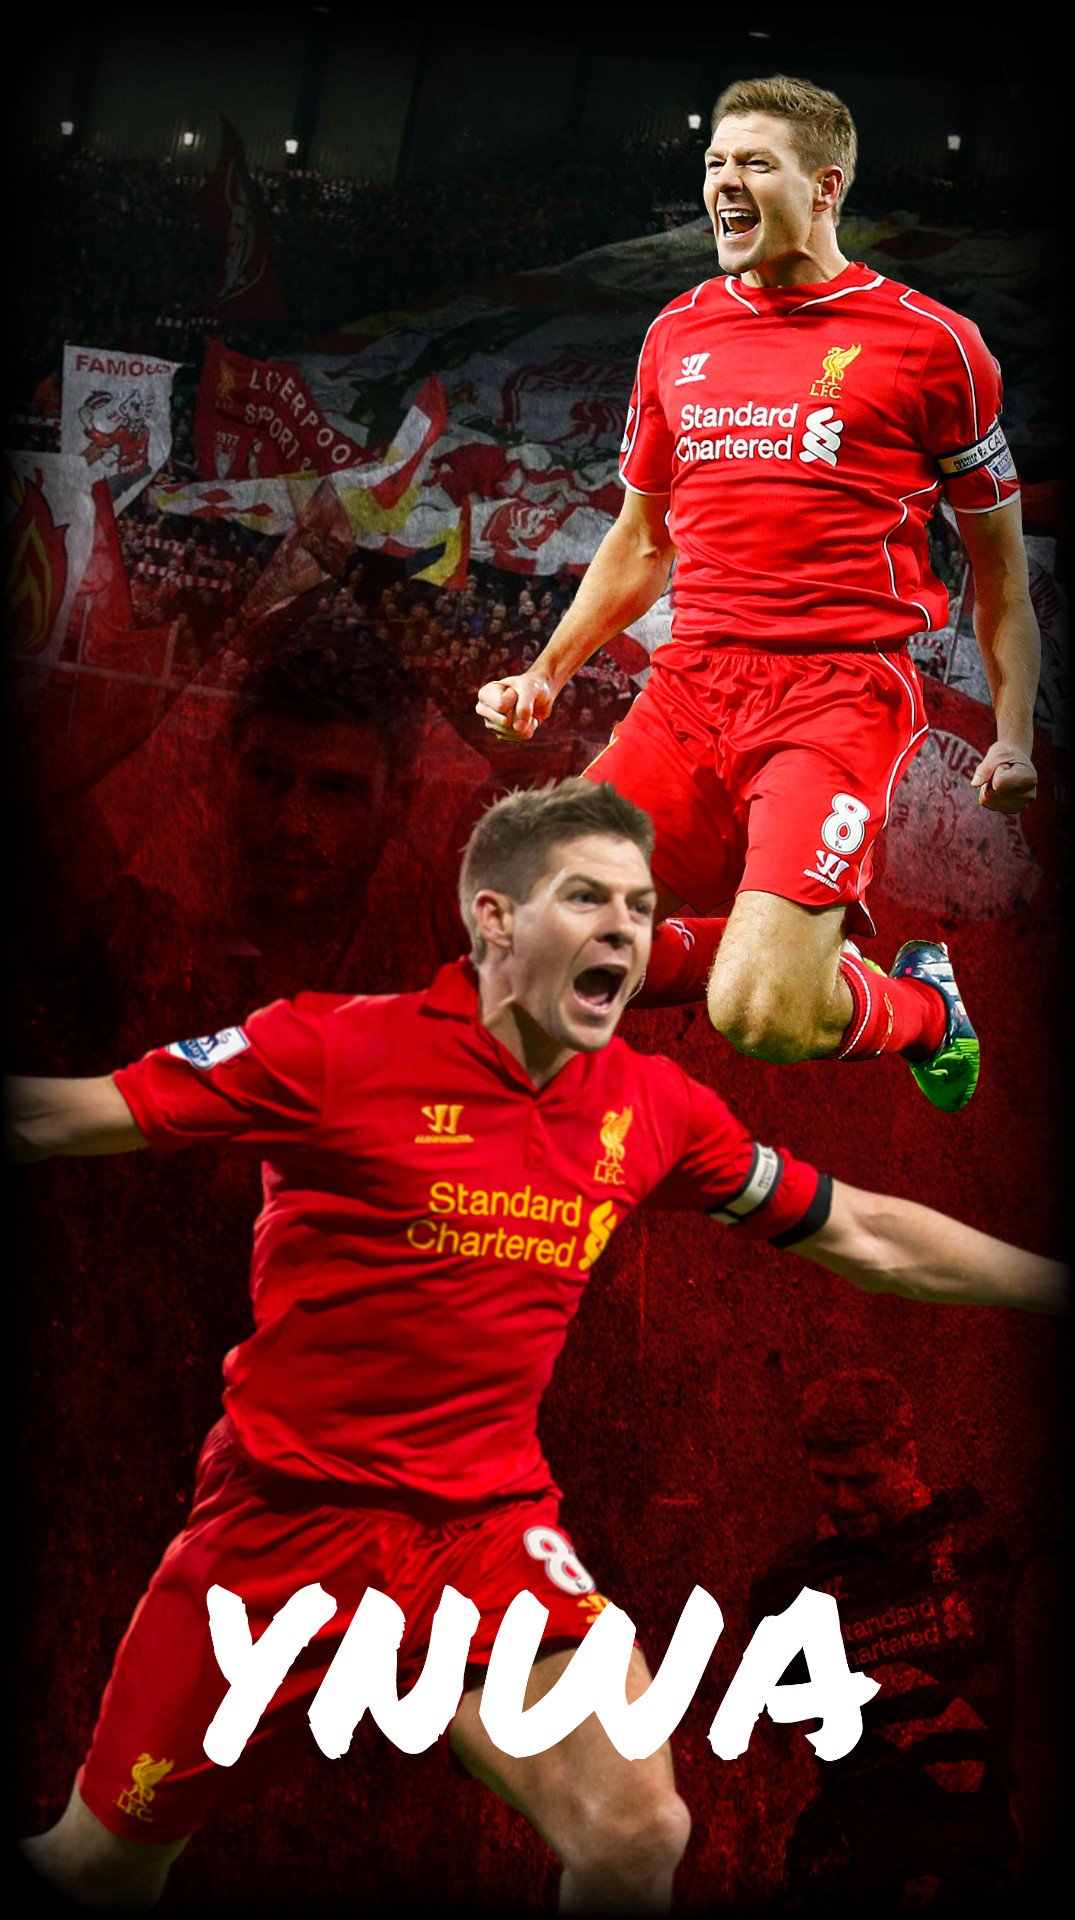 Happy Birthday to my favourite player of all time Steven Gerrard YNWA